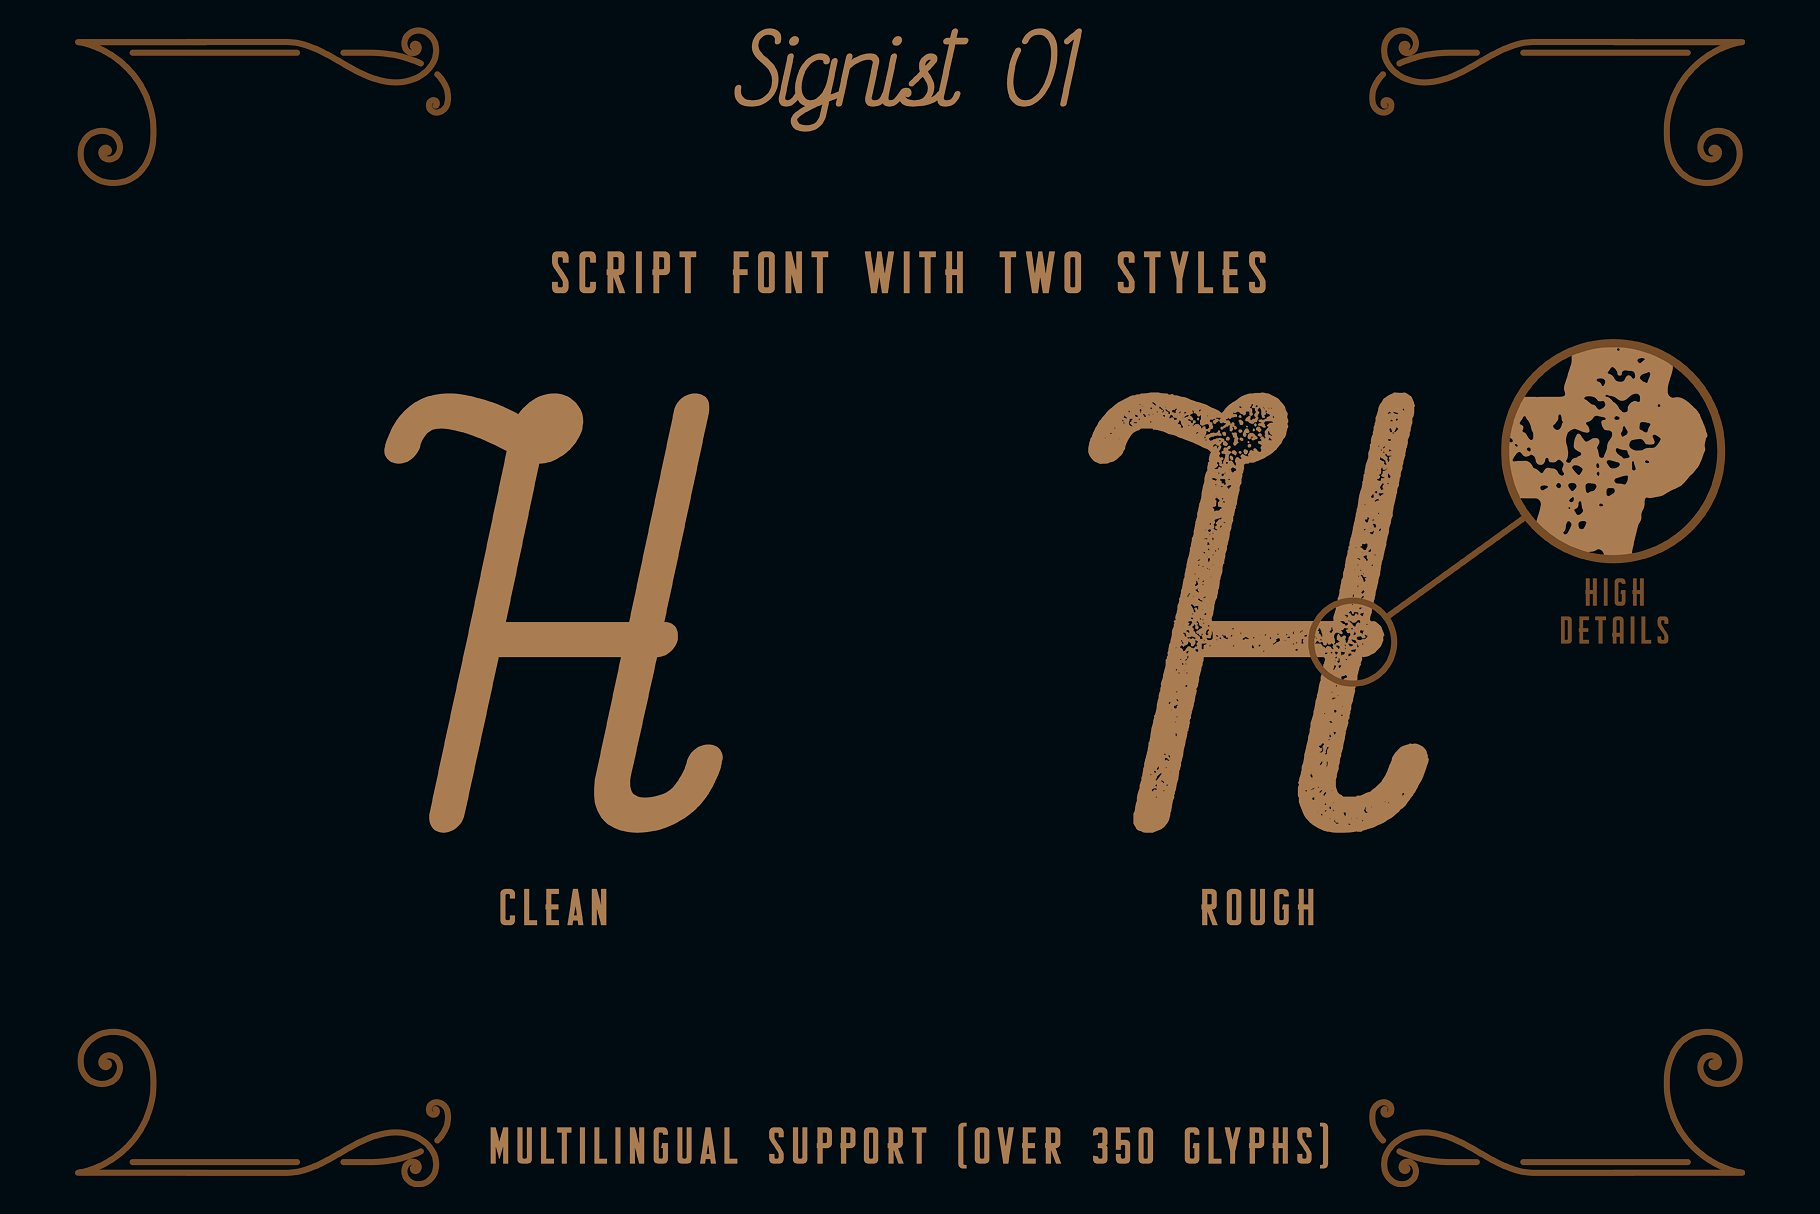 The Sign Writer Typeface